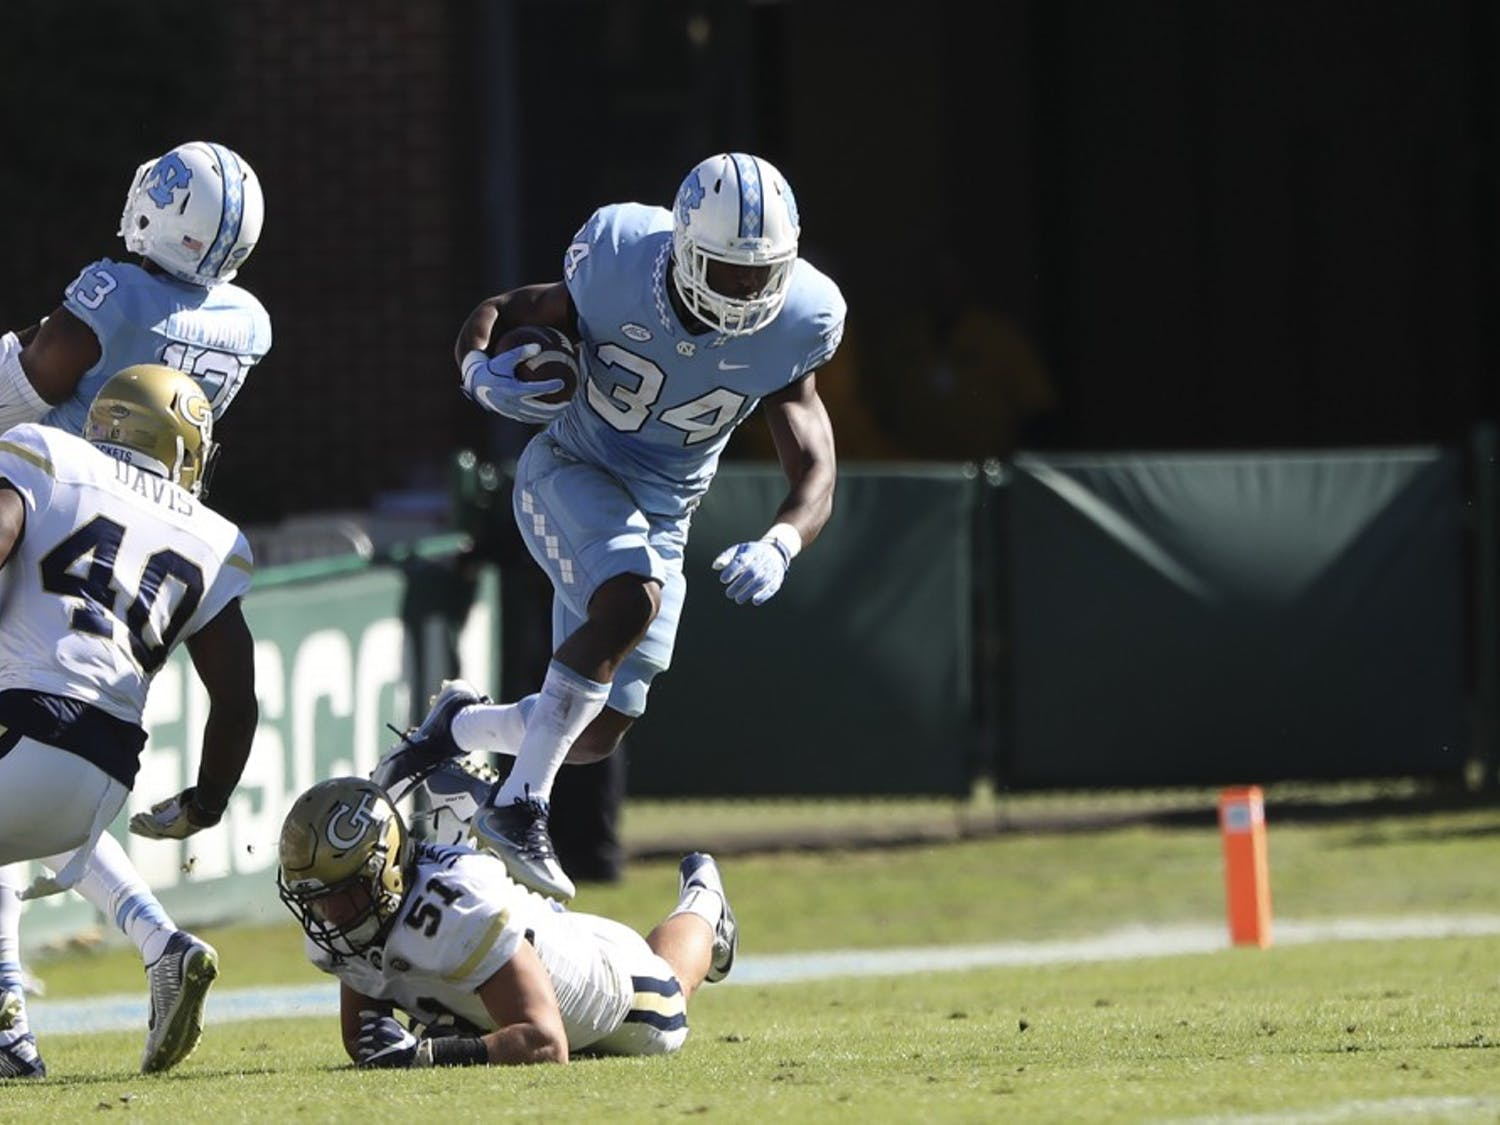 The UNC football team defeated Georgia Tech 48-20 on Homecoming weekend in Chapel Hill on Saturday.